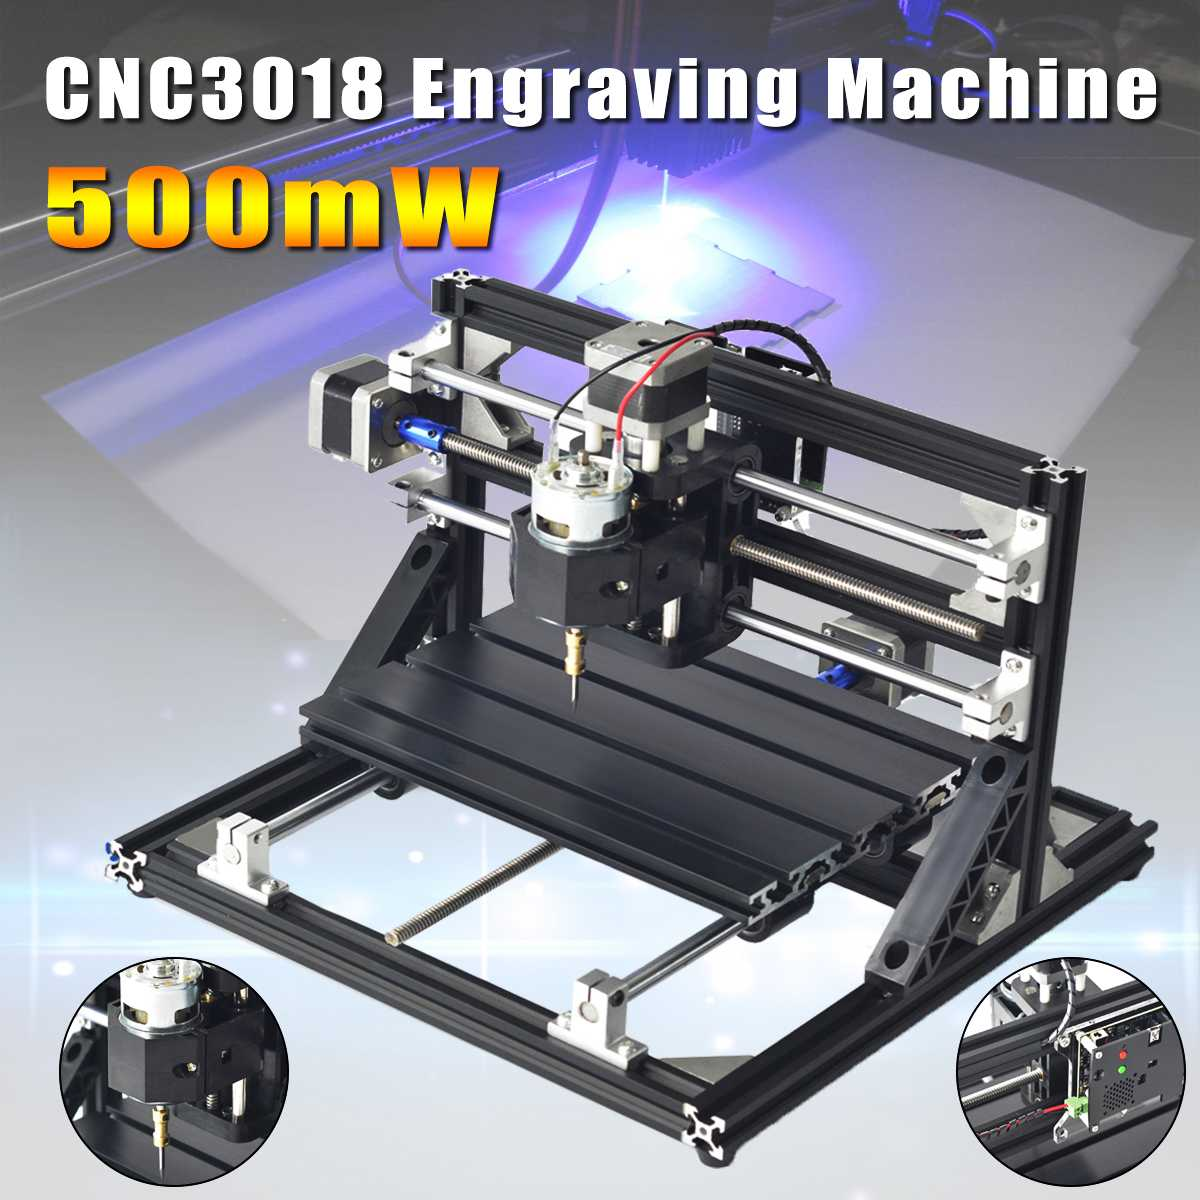 CNC3018 CNC Engraving Machine Laser Engraving Pcb Pvc Milling Machine Wood Router Cnc 3018 With 500 mw Laser Head Grbl Control